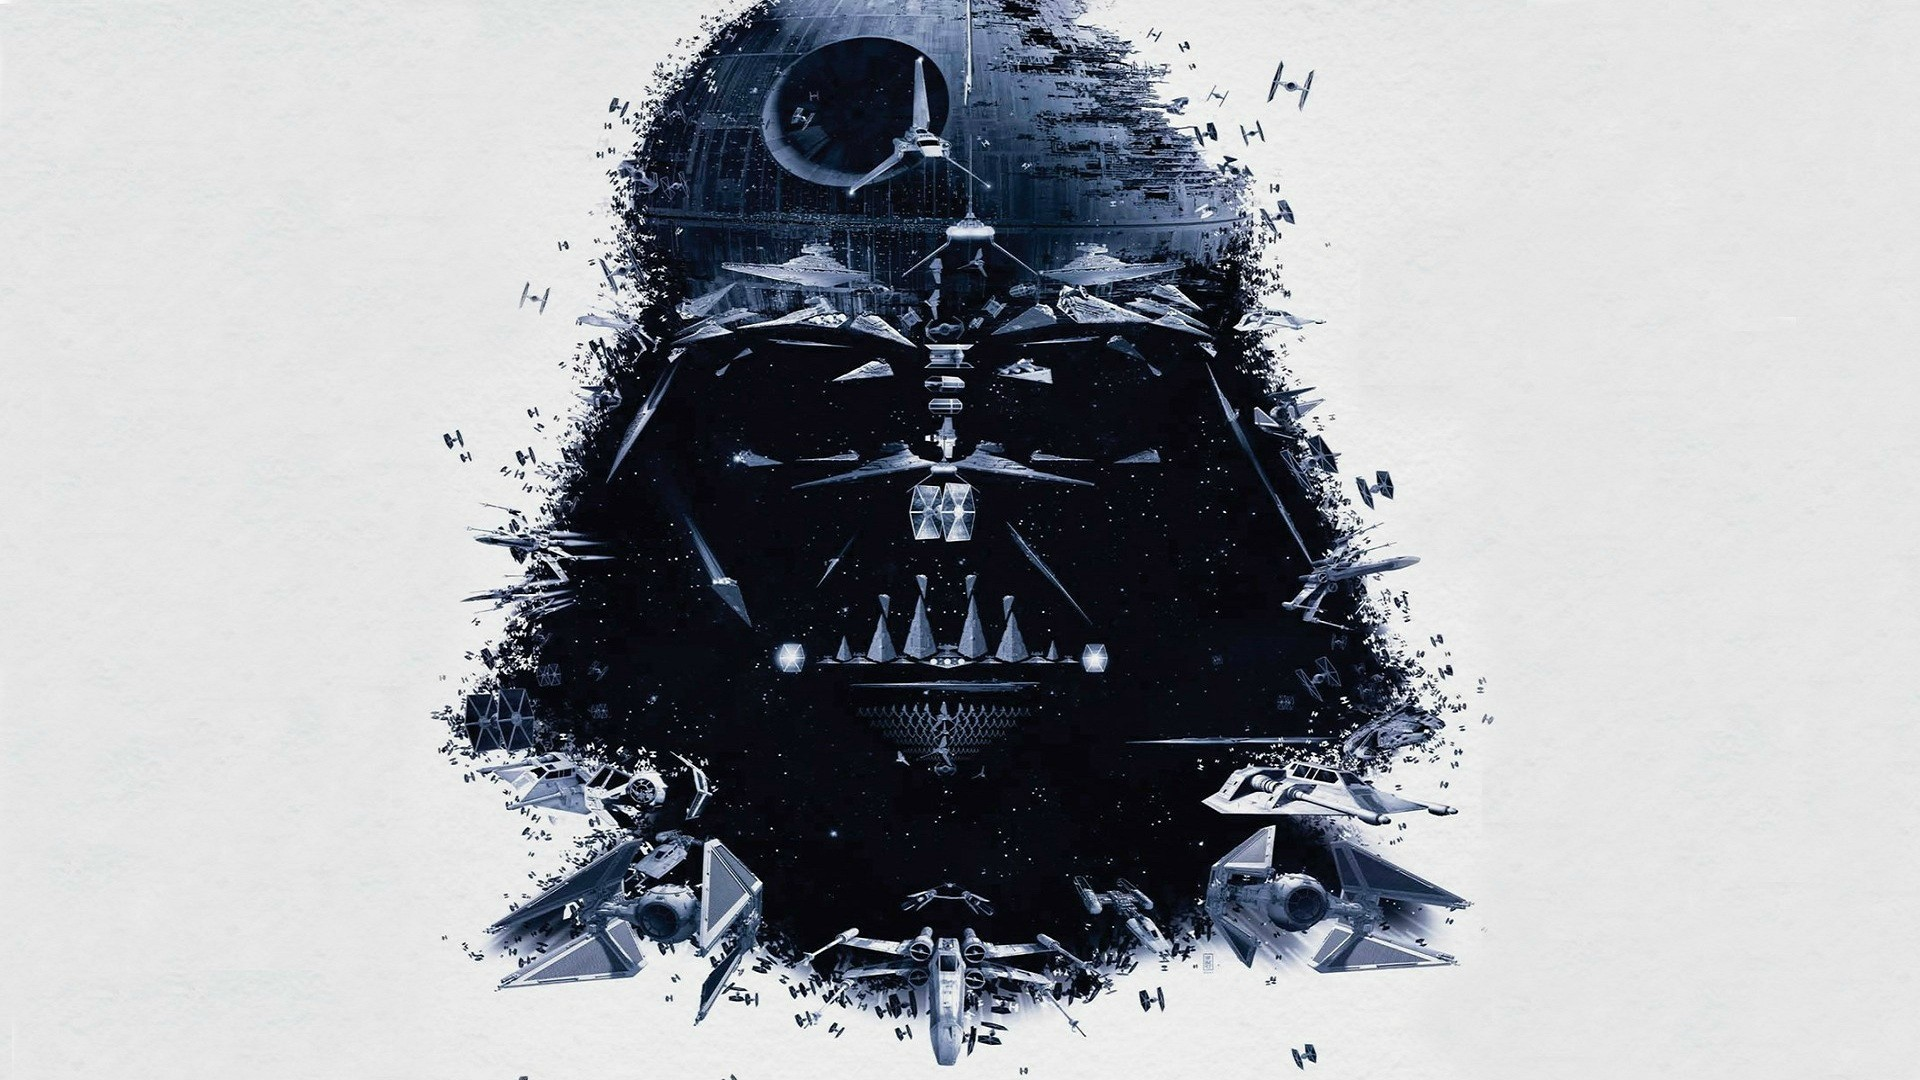 81+ star wars wallpapers ·① download free cool high resolution